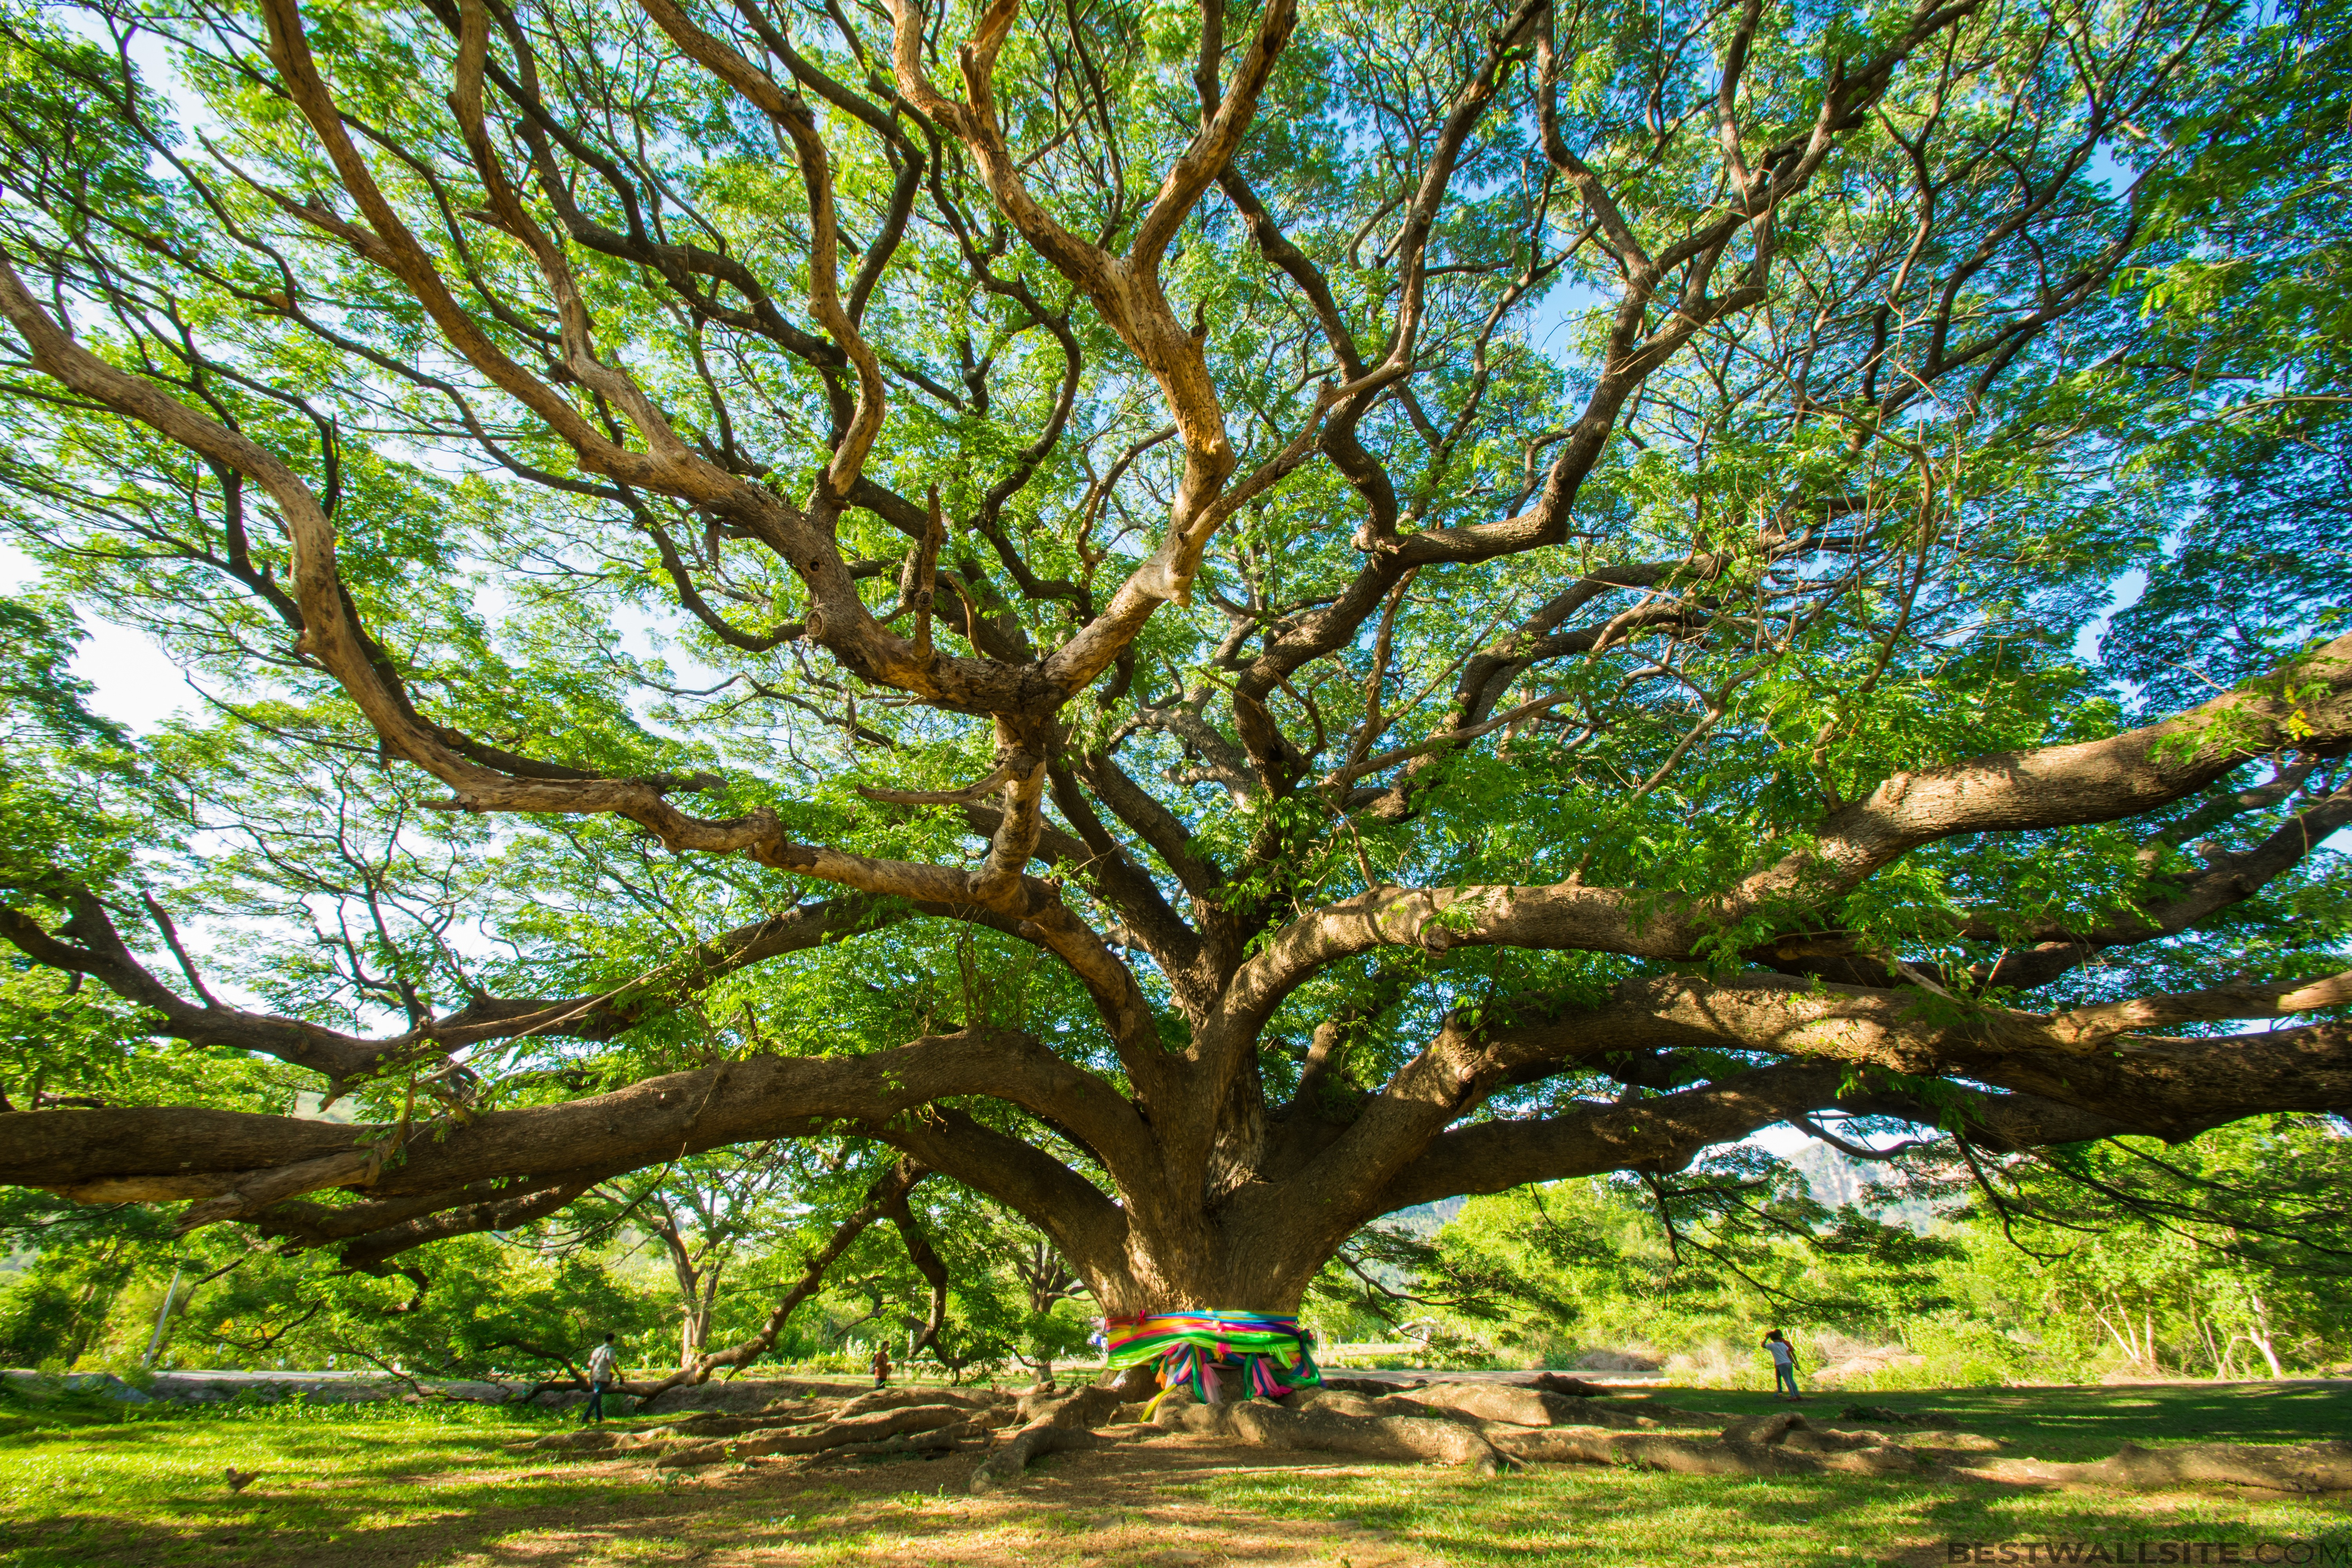 Animated Hd Wallpapers 1080p Free Download Download Amazing Tree Wallpaper Gallery